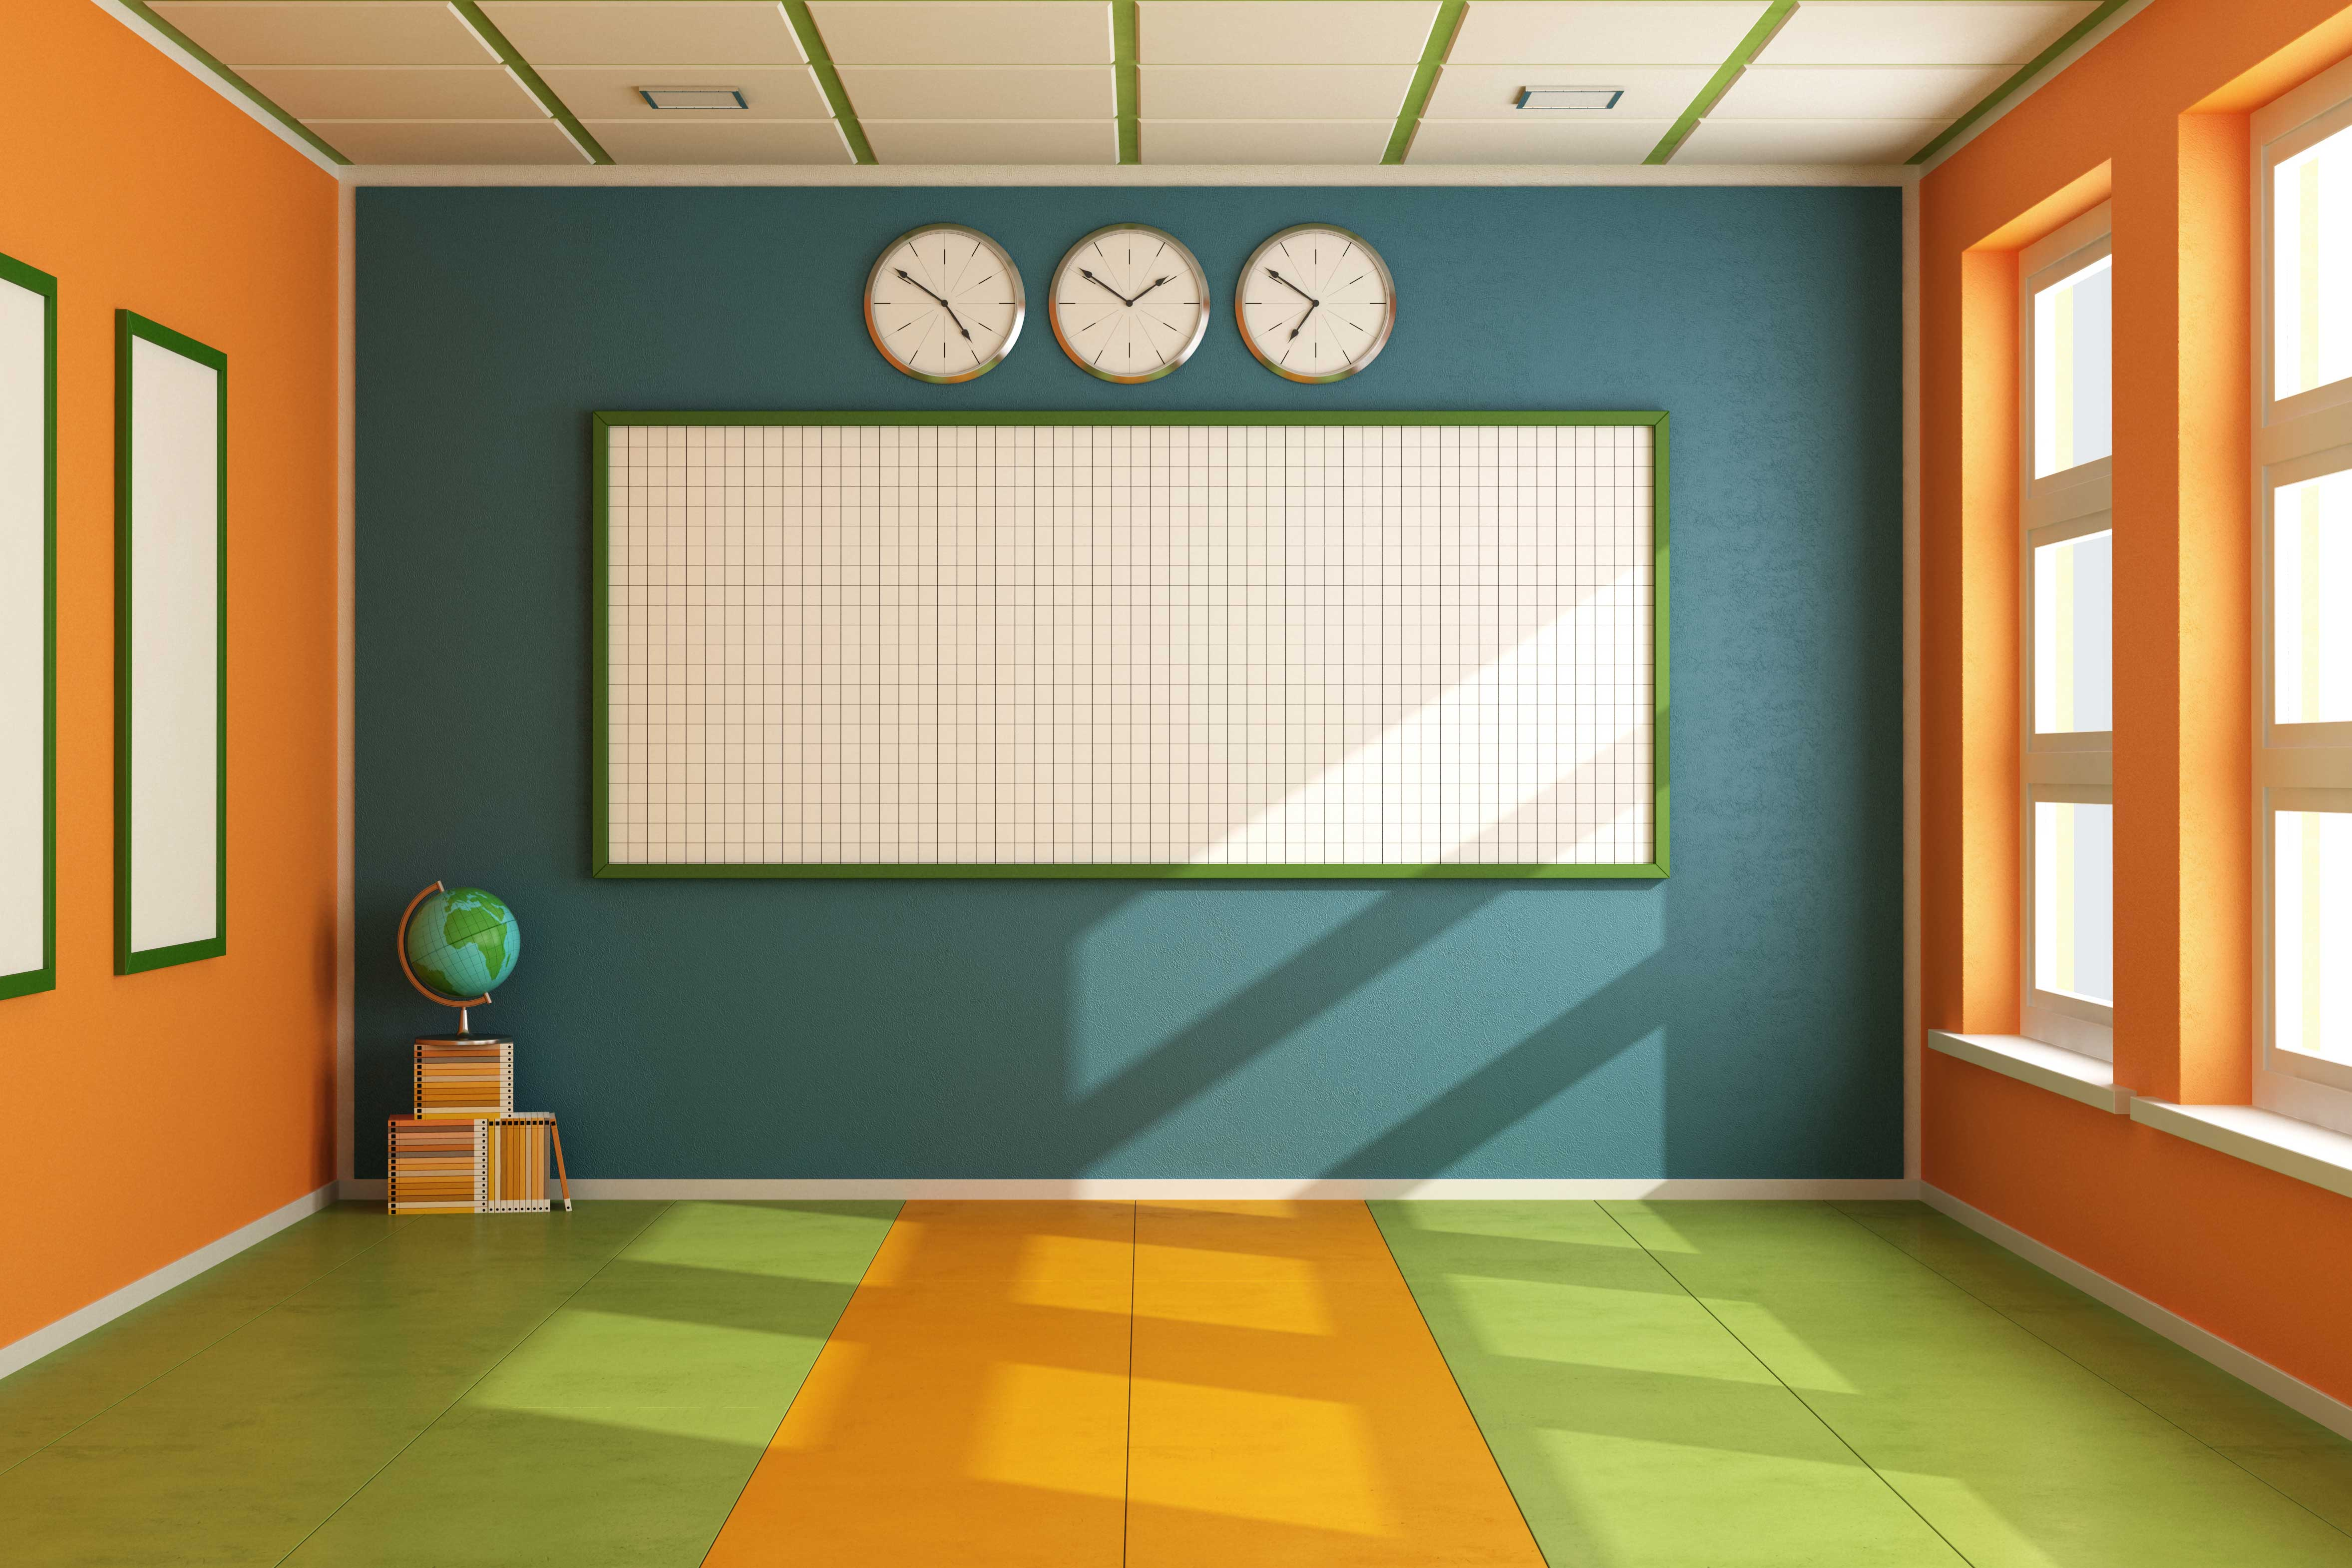 Modern Classroom Vector ~ Classroom clipart panda free images